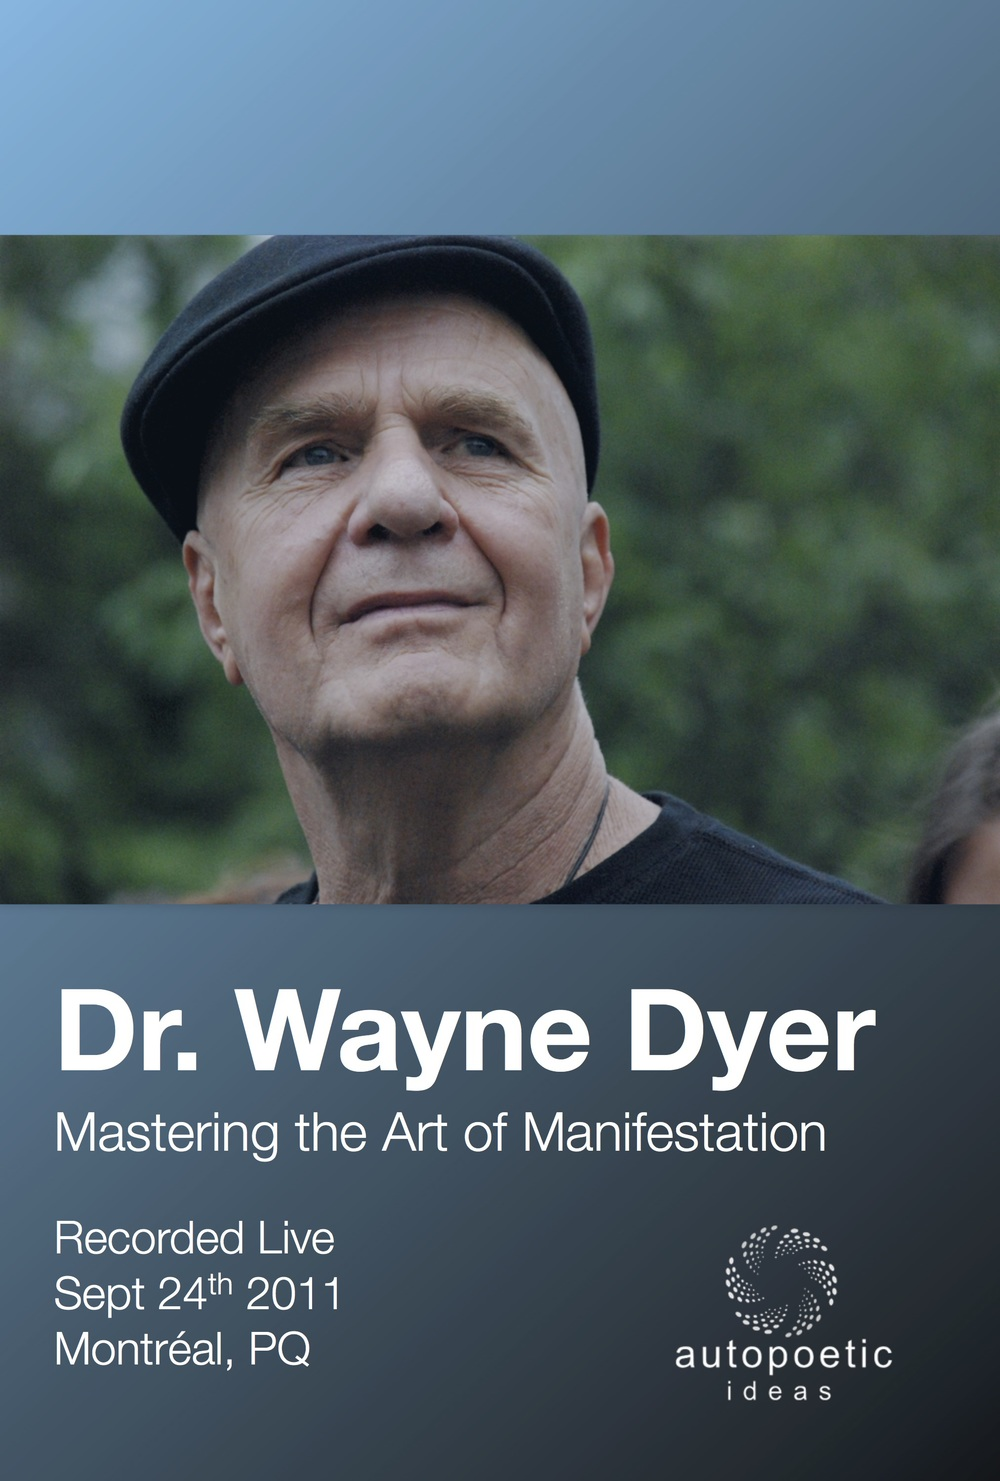 Wayne Dyer: Mastering the Art of Manifestation  - Montreal 2011